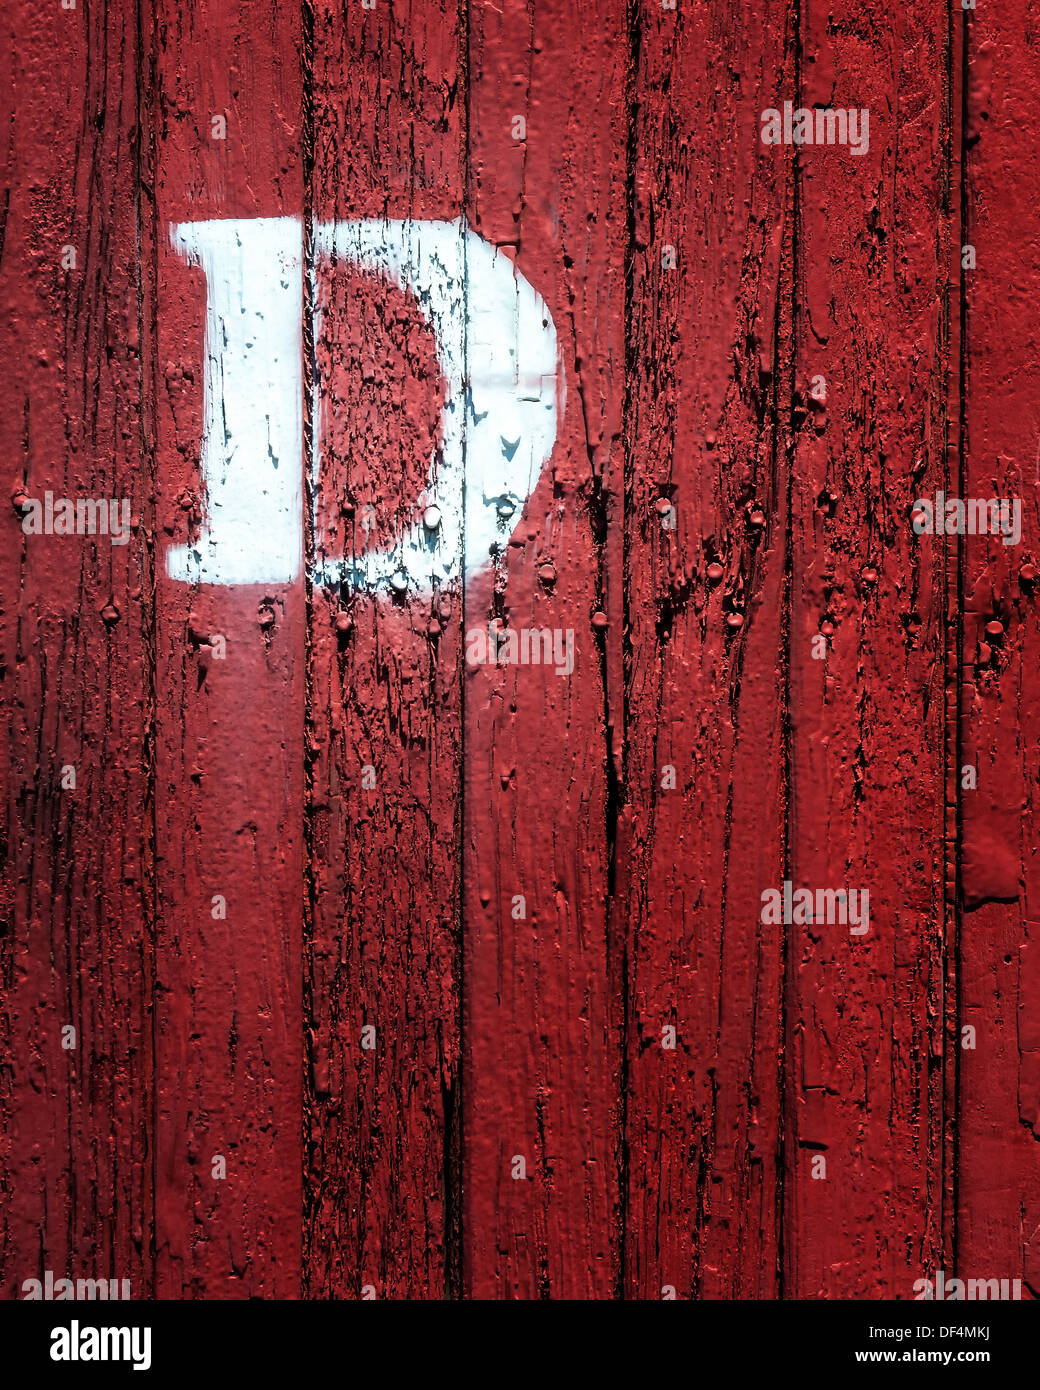 D,a colorful editorial image of a rail road box car, at the Durango & Silverton rail road yard,Durango Colorado - Stock Image